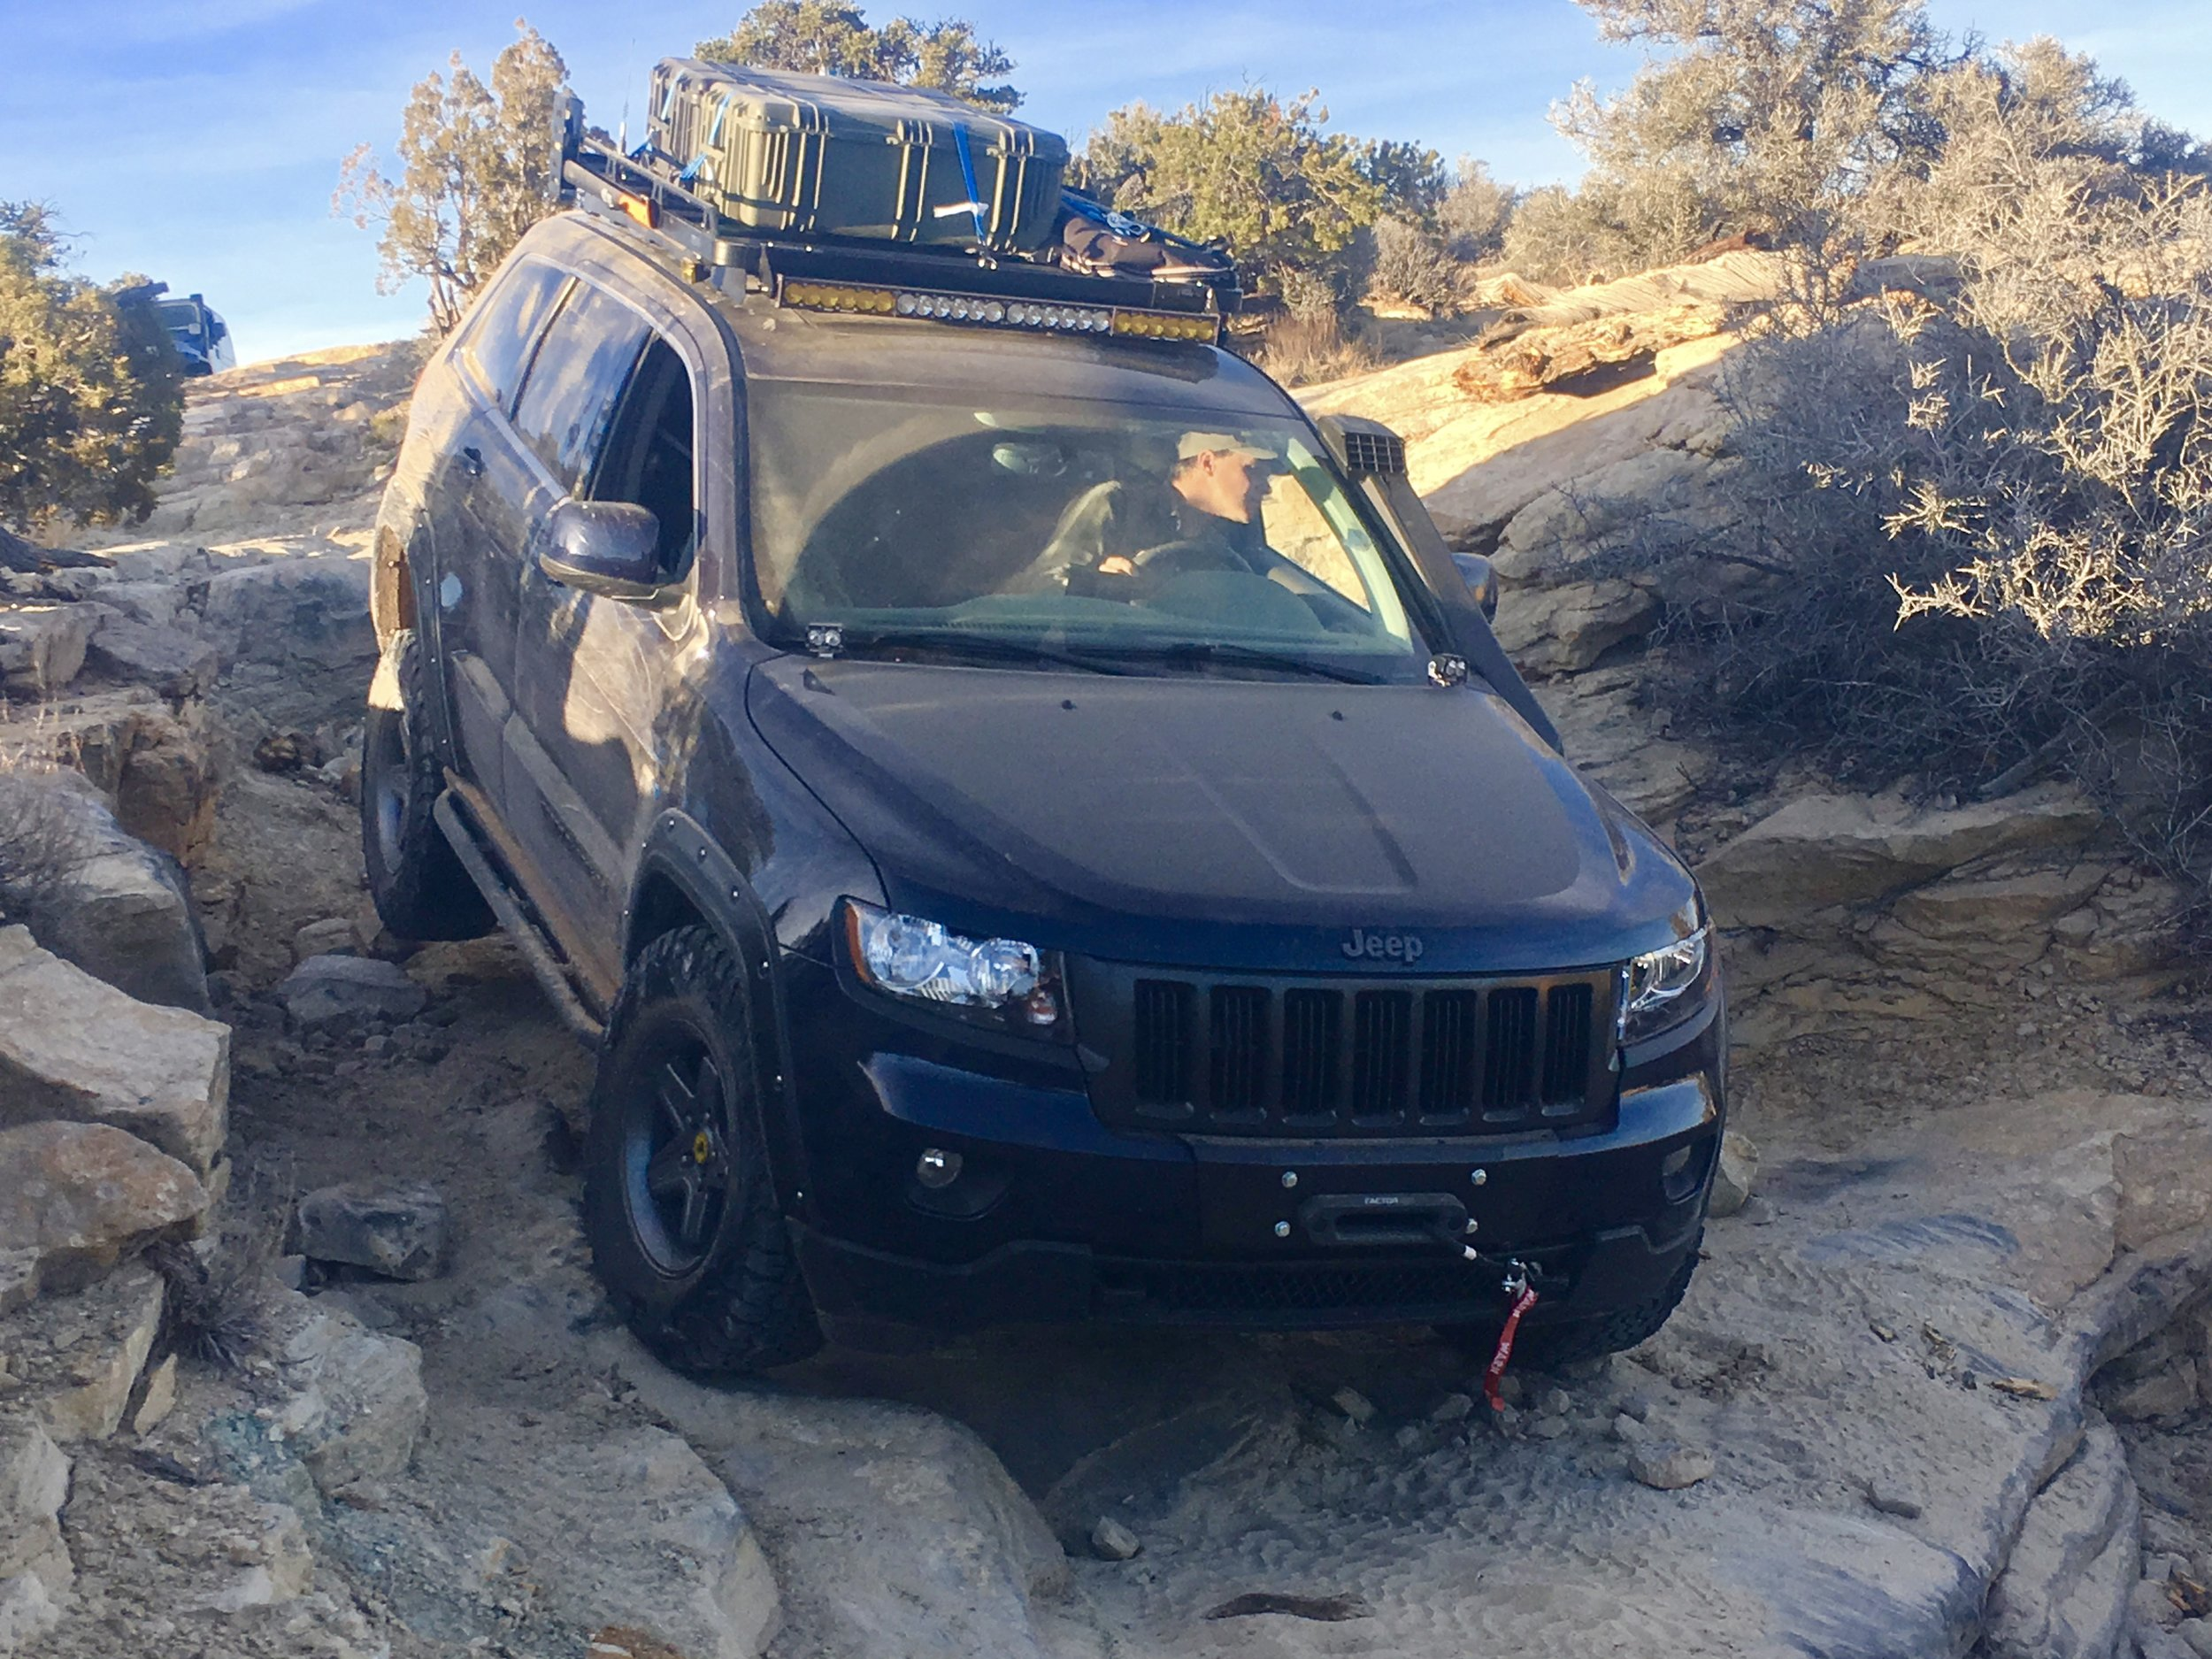 """Navigating the """"Devil's Racetrack"""" trail in the San Rafael Swell of Utah. A BLM black-rated route."""